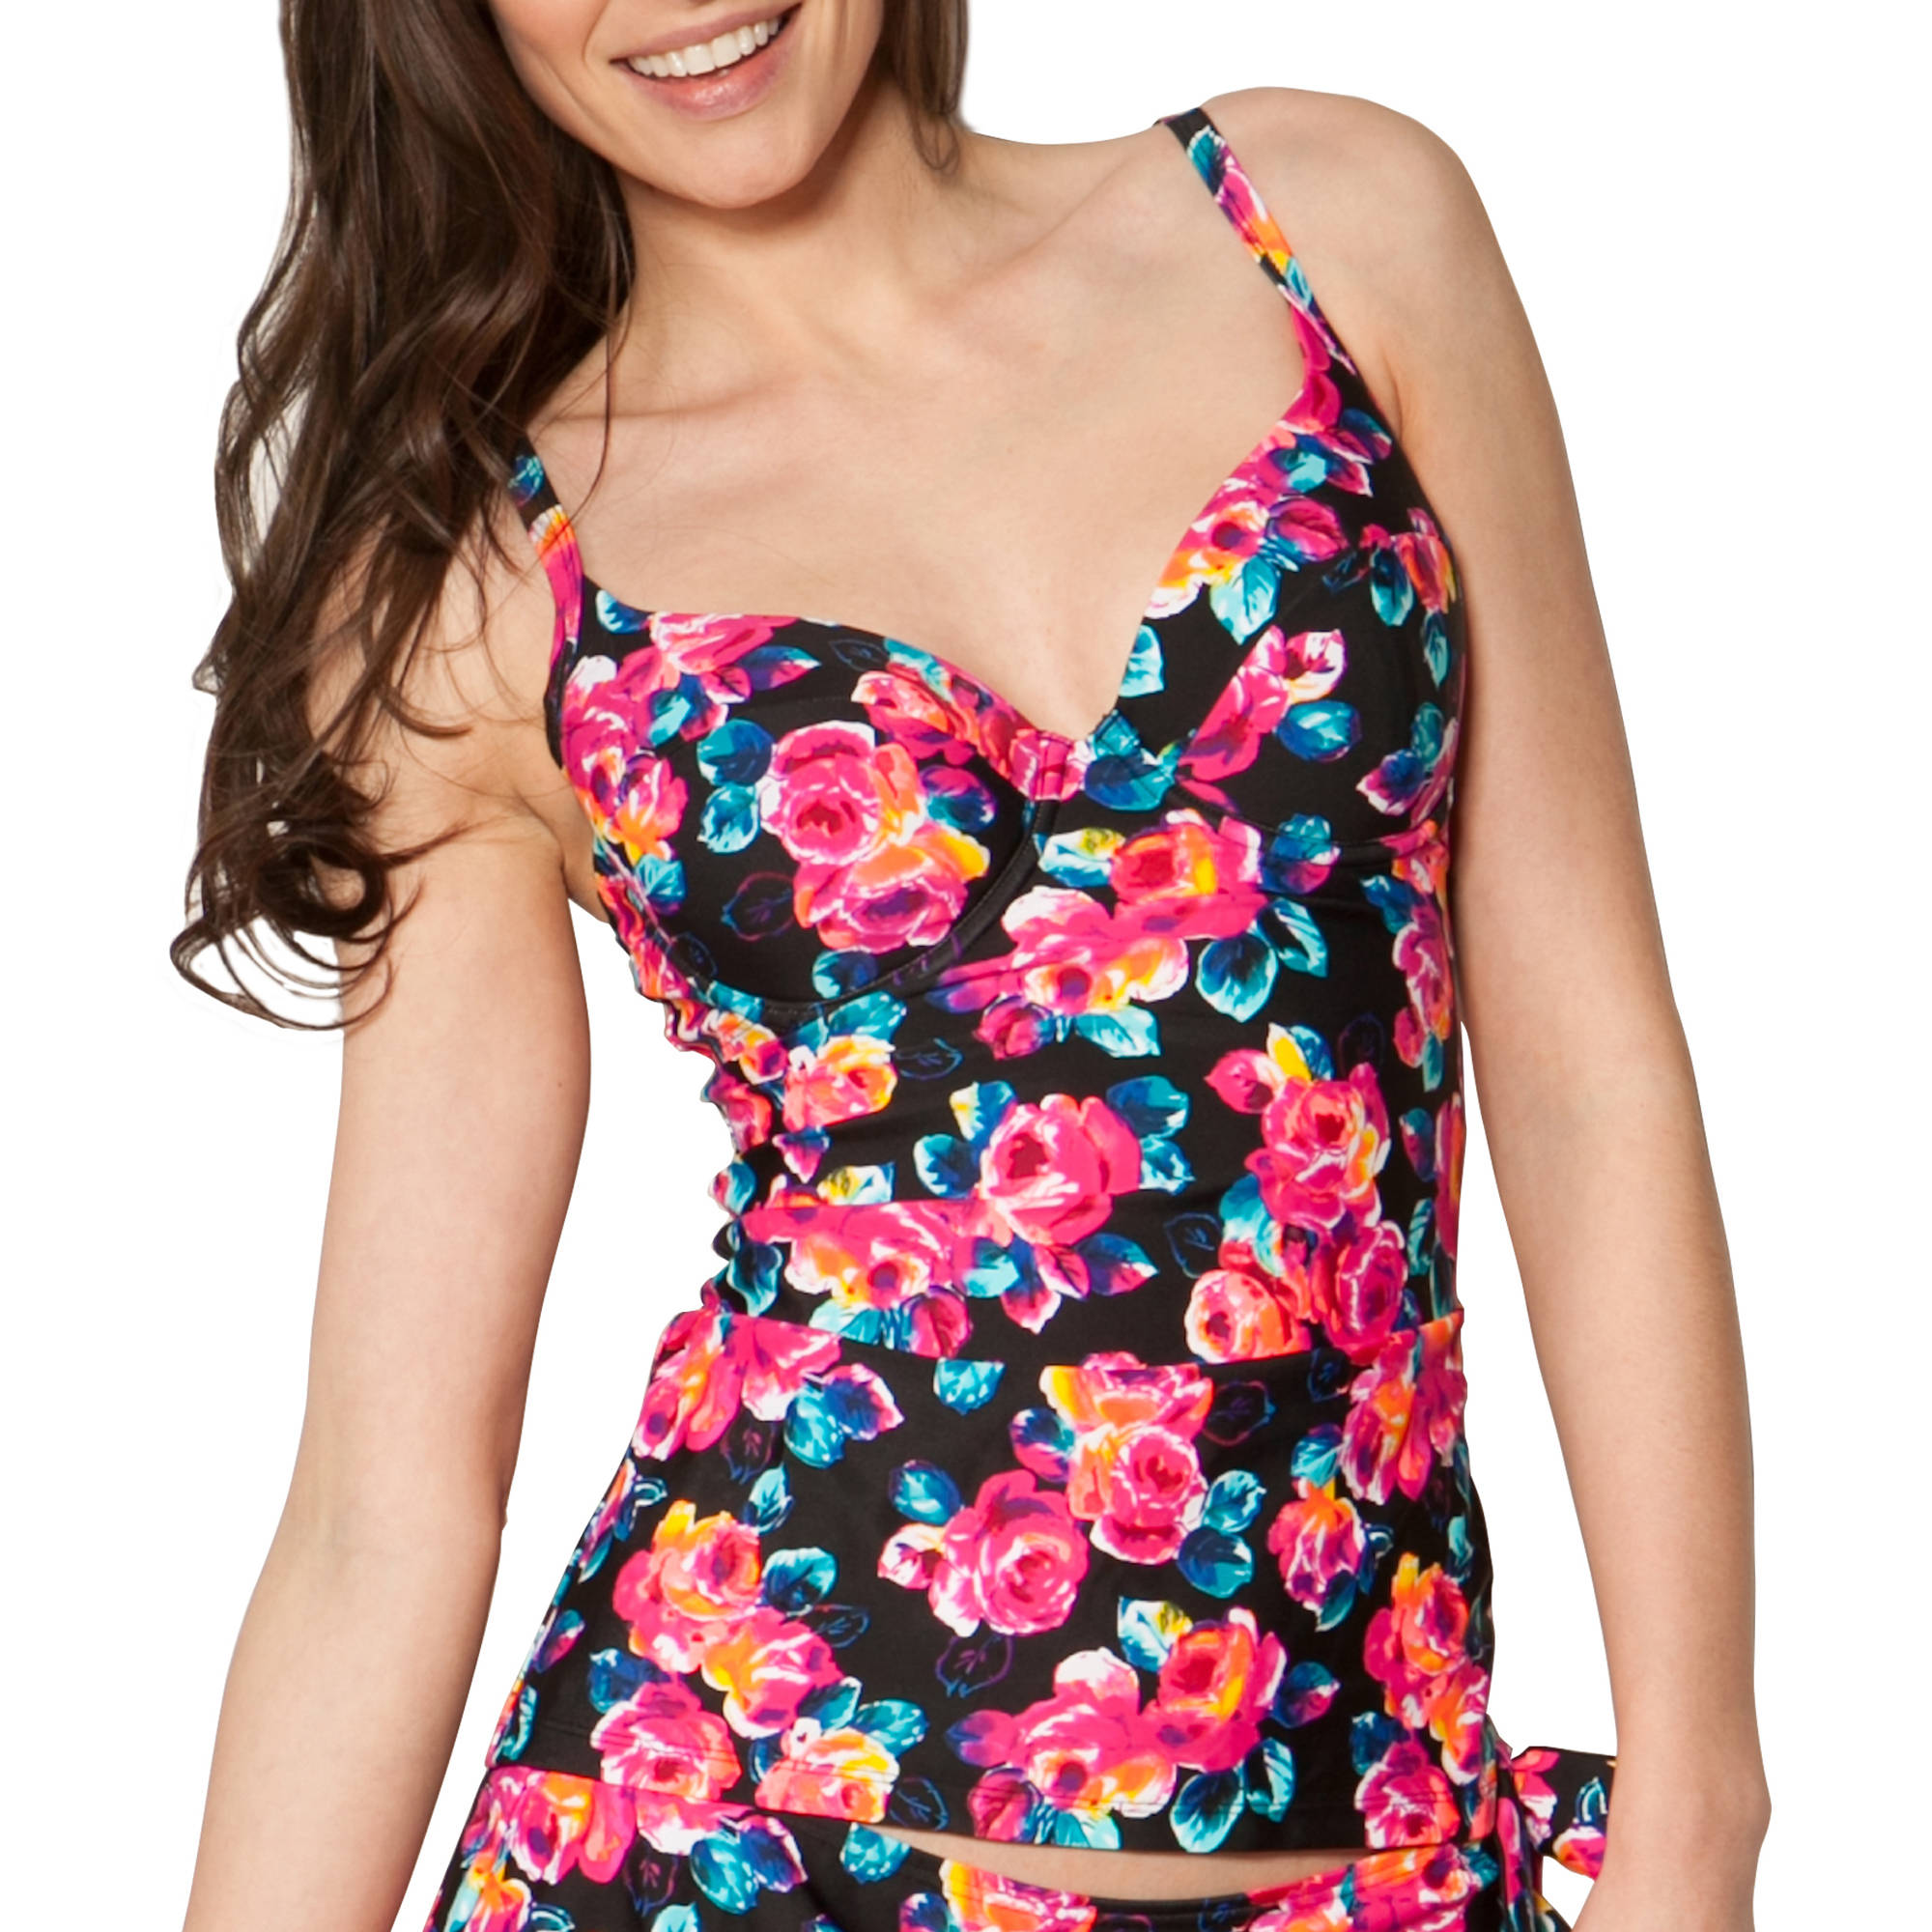 Smart & Sexy Women's Long Tankini Top--Choose Your Bra Size For The Perfect Fit